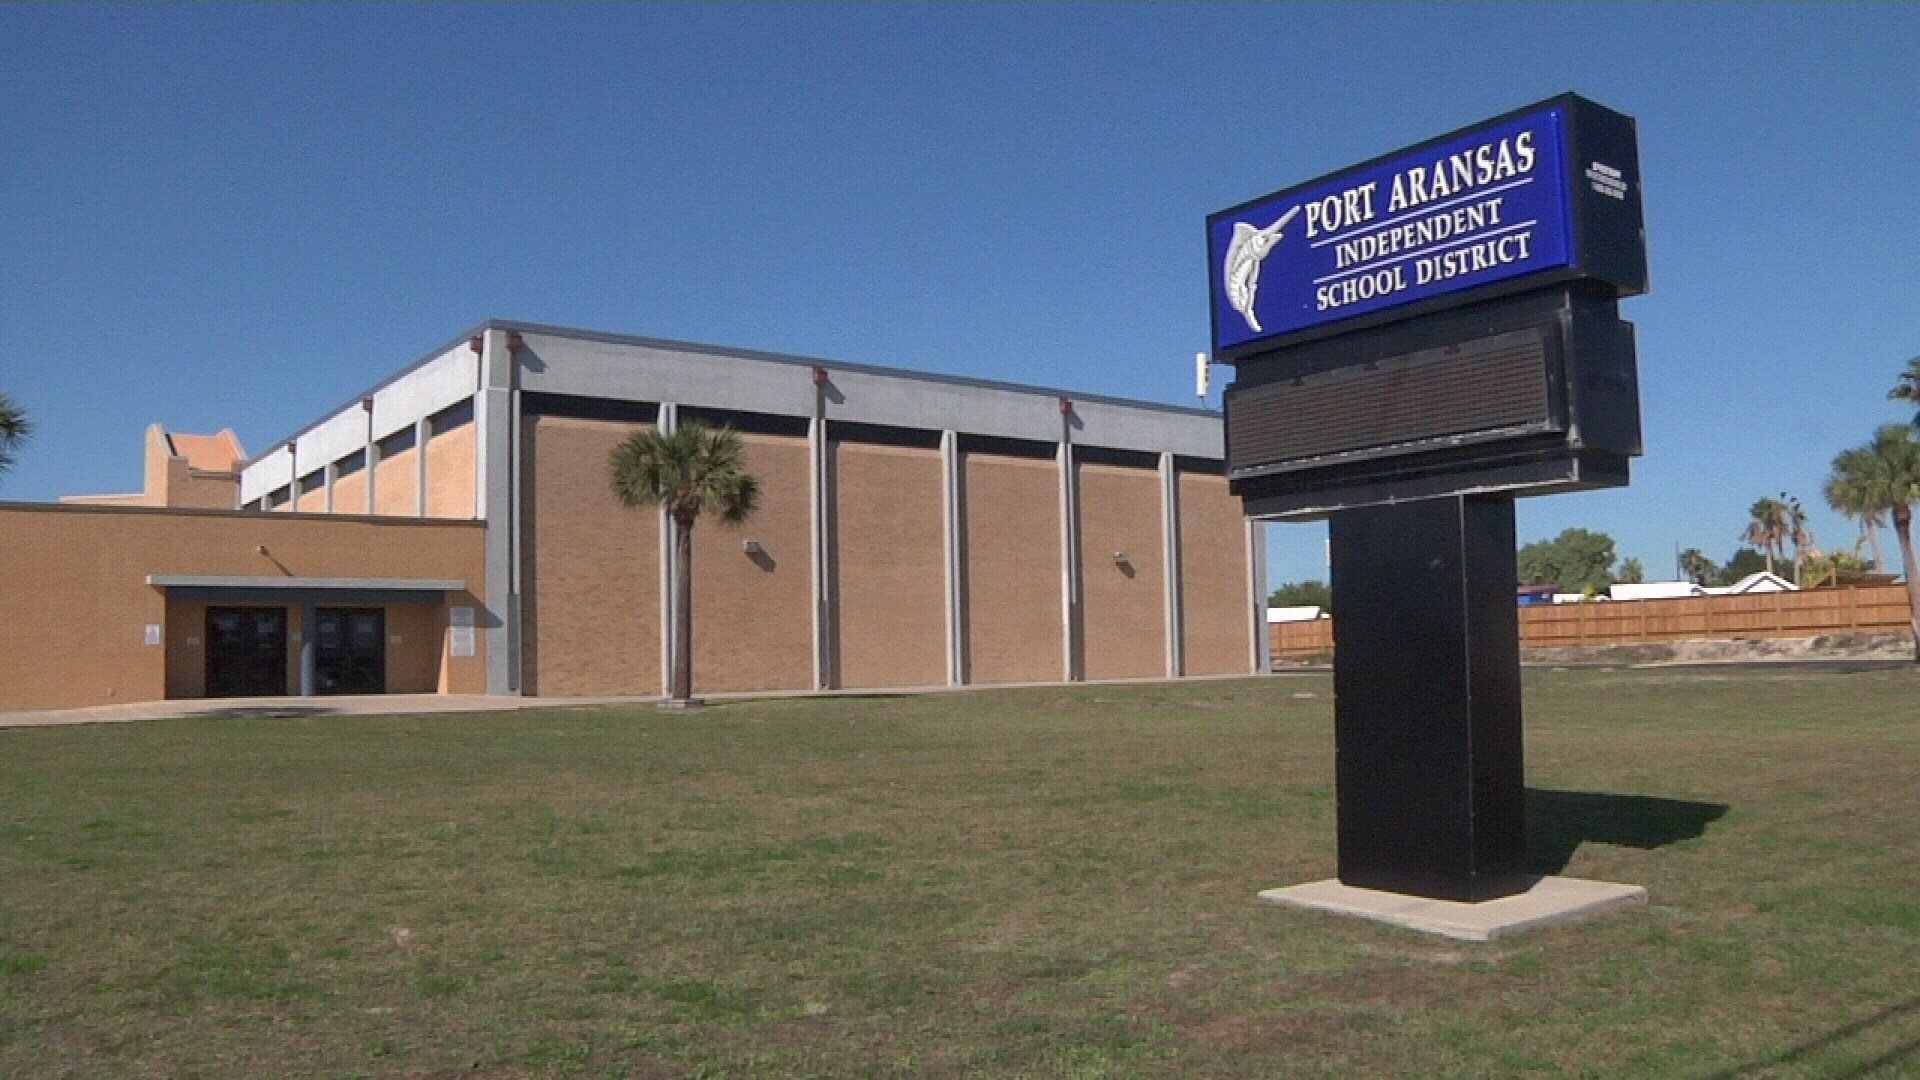 Port Aransas ISD is defined as a small school district by the state and loses a percentage of its funding.